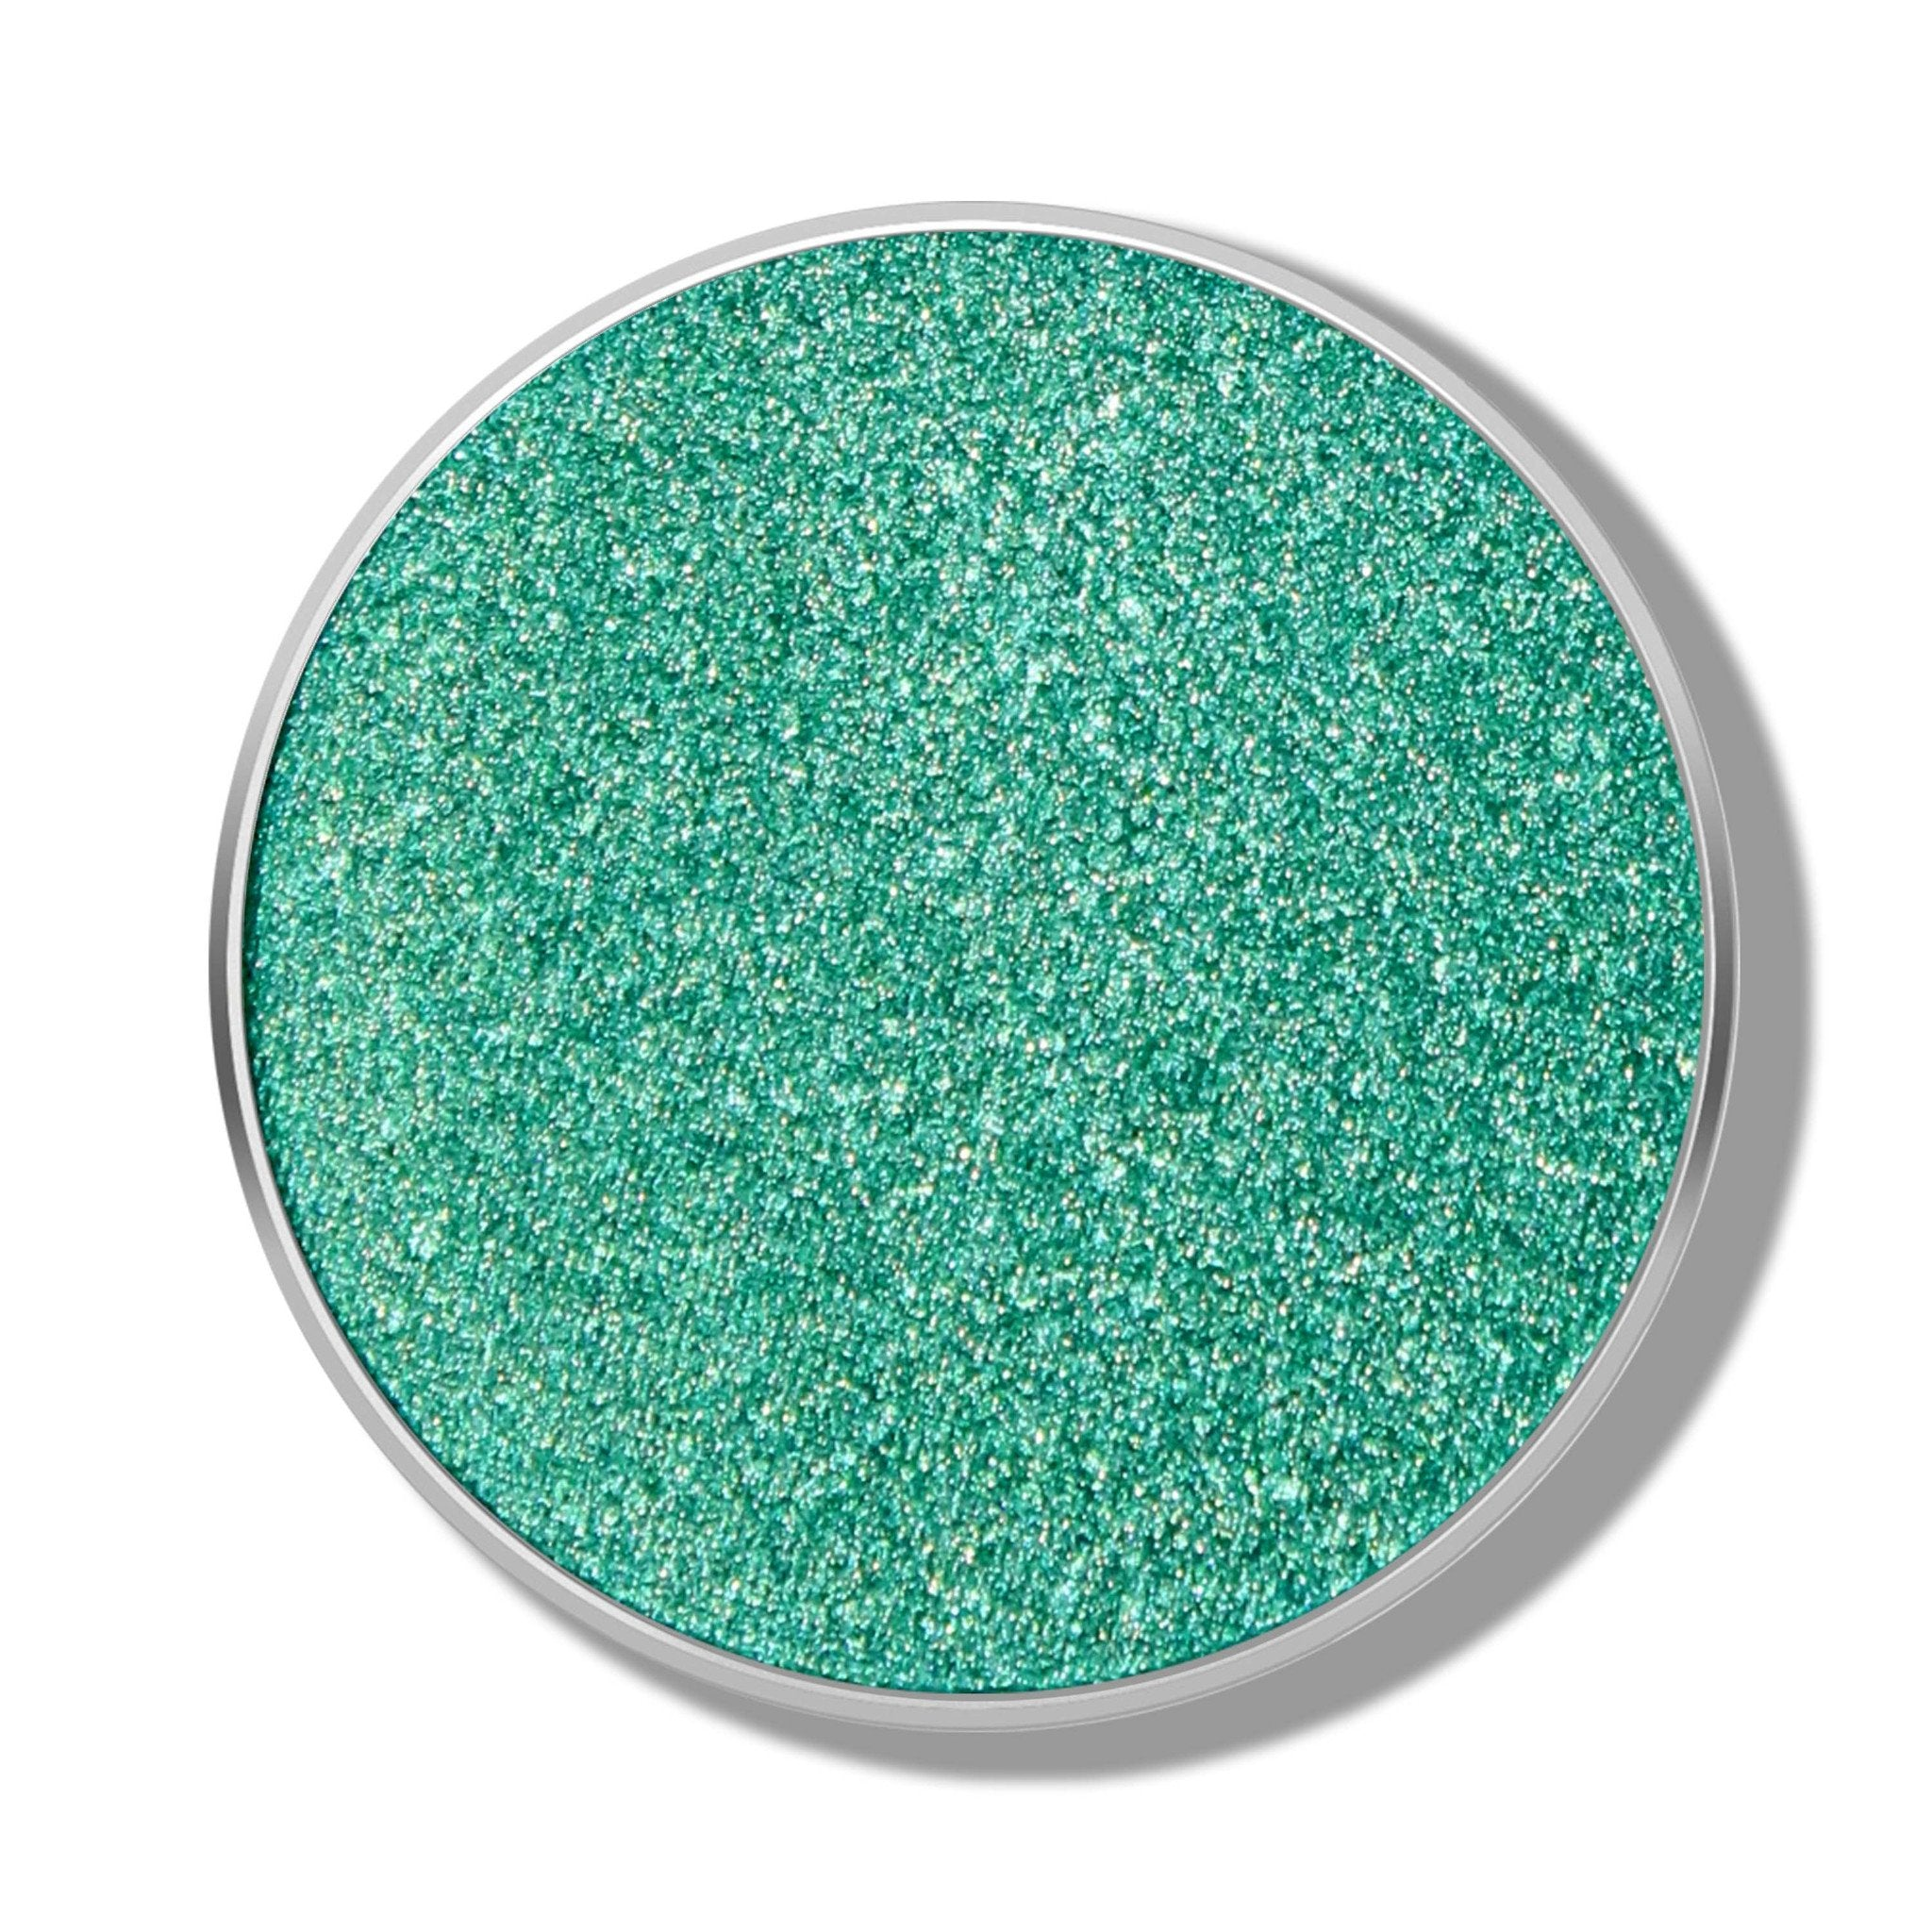 SUVA Beauty Shimmer Shadow